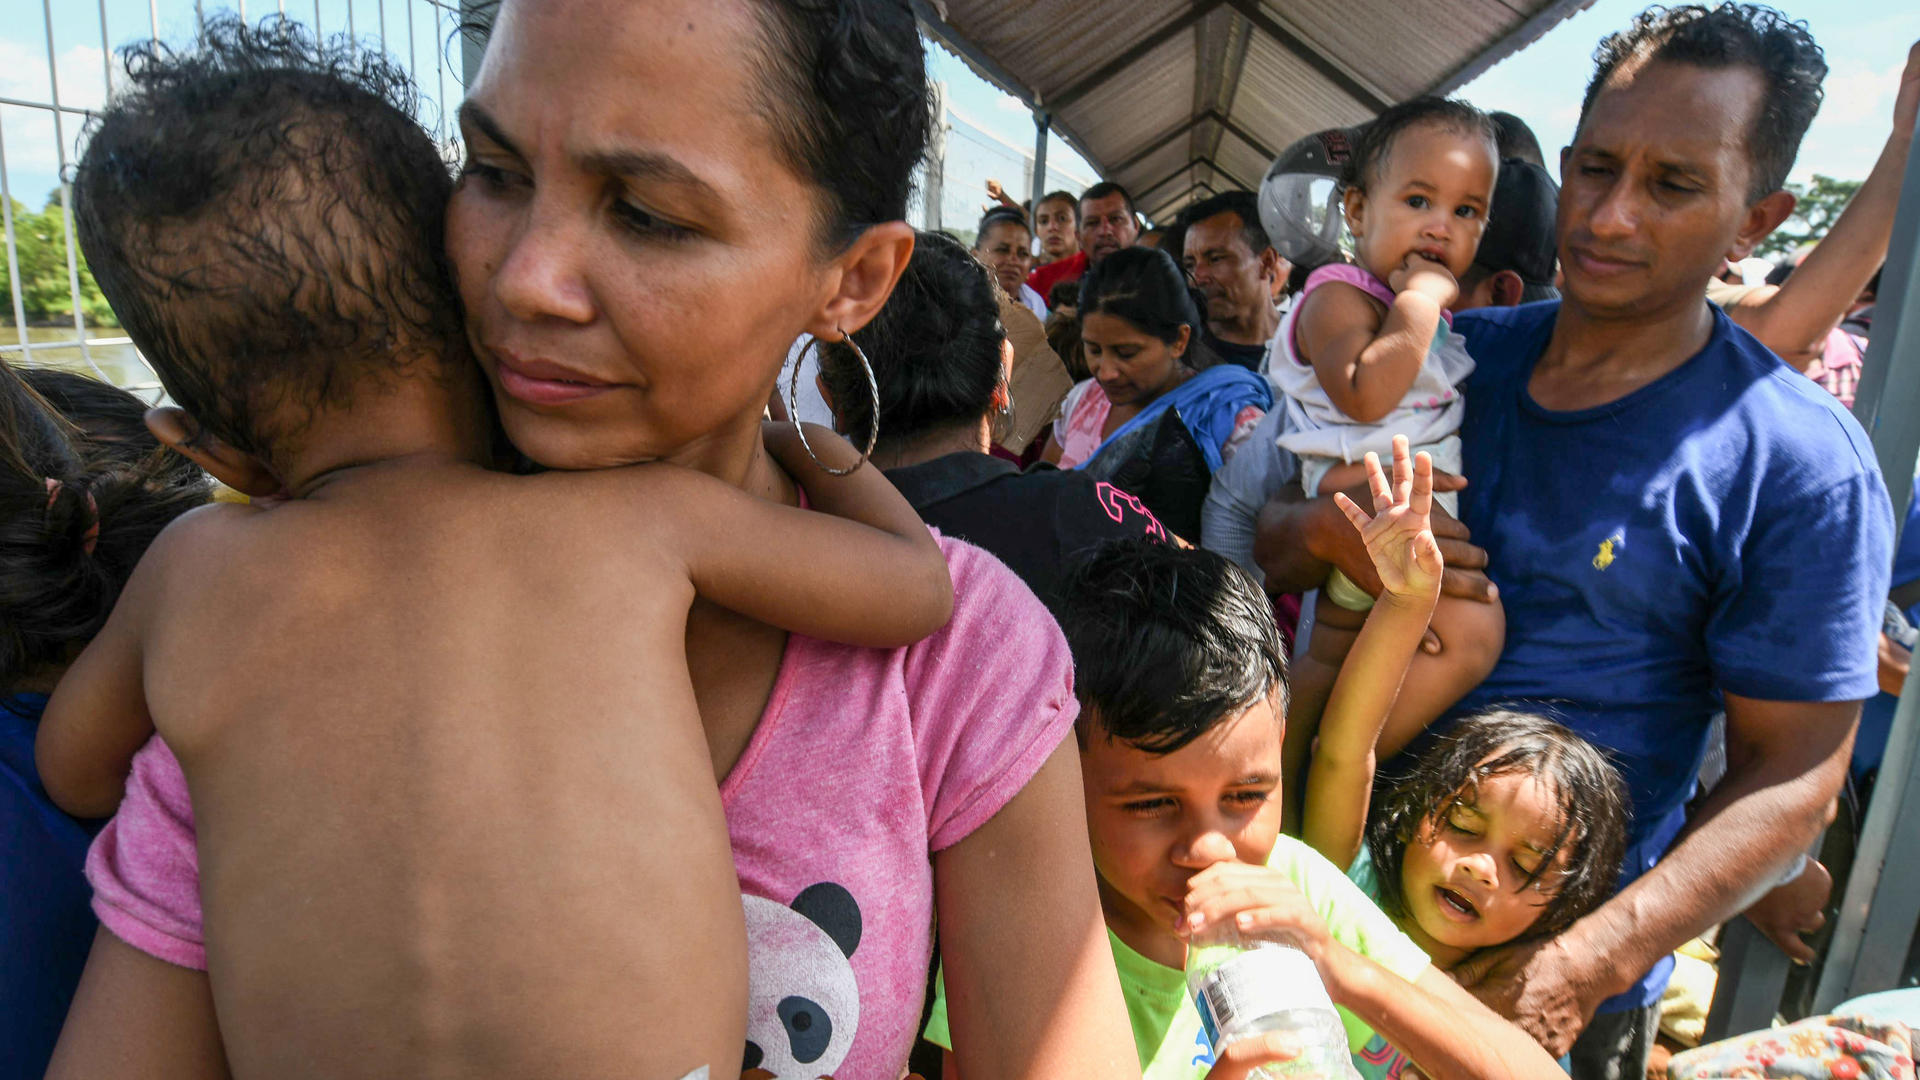 A Honduran migrant couple and their five kids taking part in a caravan heading to the US, wait to cross the border from Ciudad Tecun Uman in Guatemala, to Ciudad Hidalgo, Mexico. Photo: ORLANDO SIERRA/AFP/Getty Images